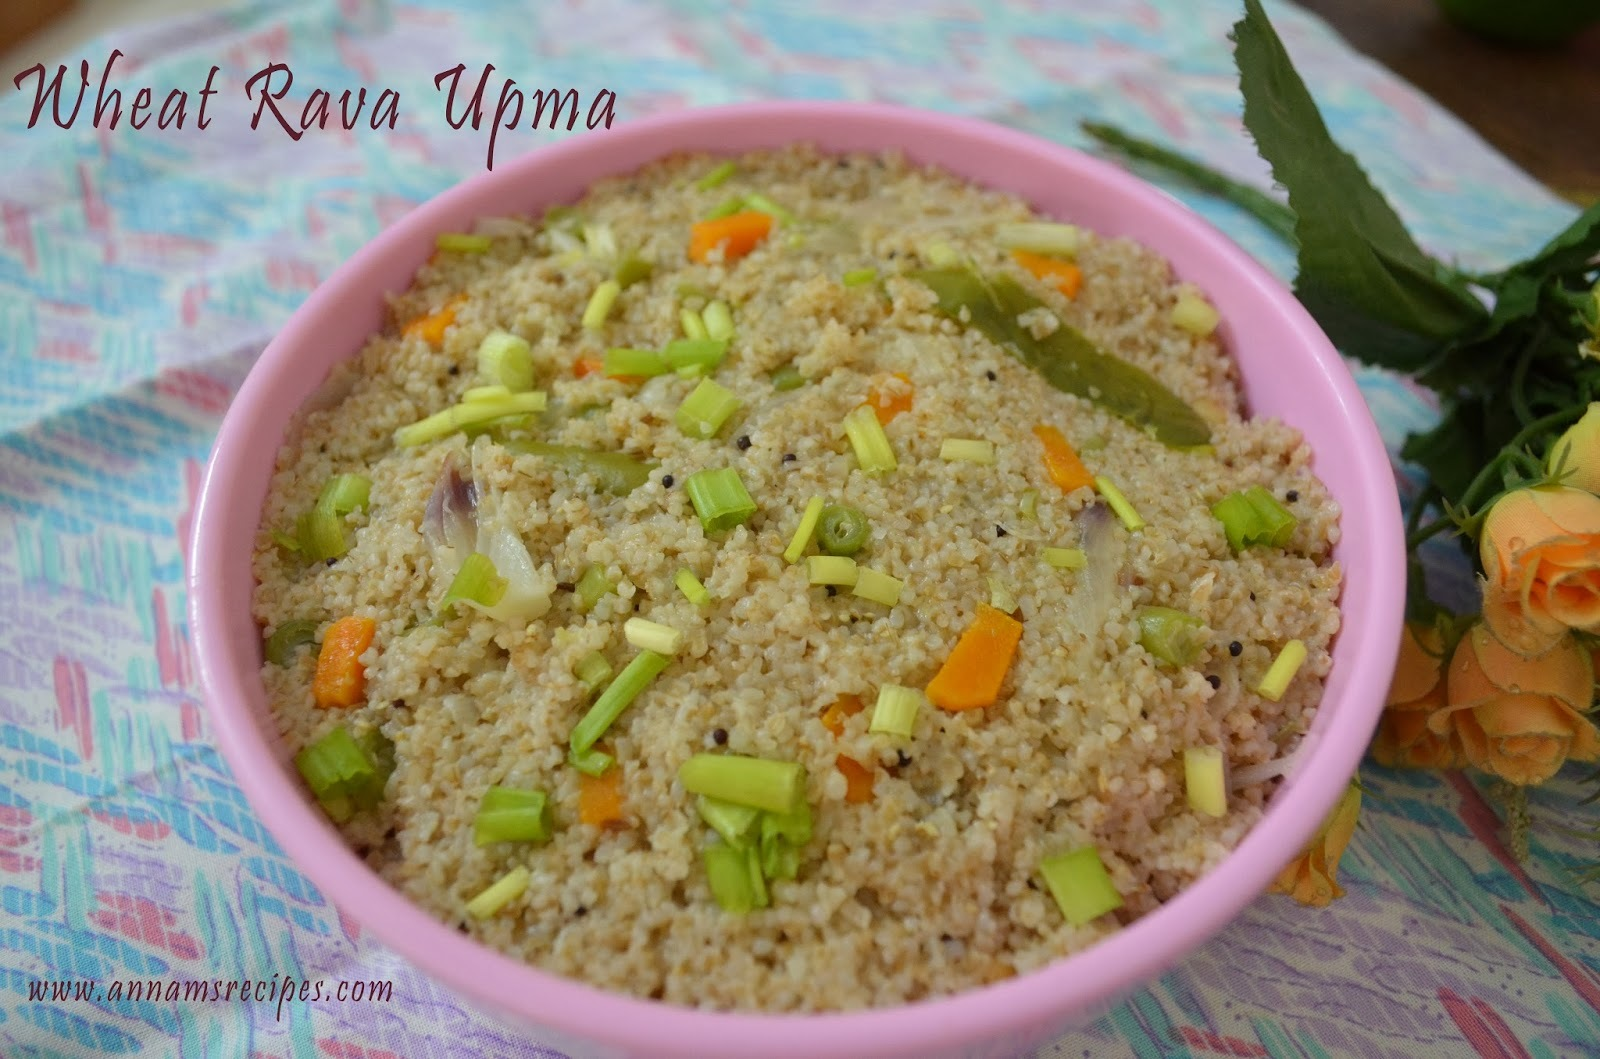 Wheat Rava Upma